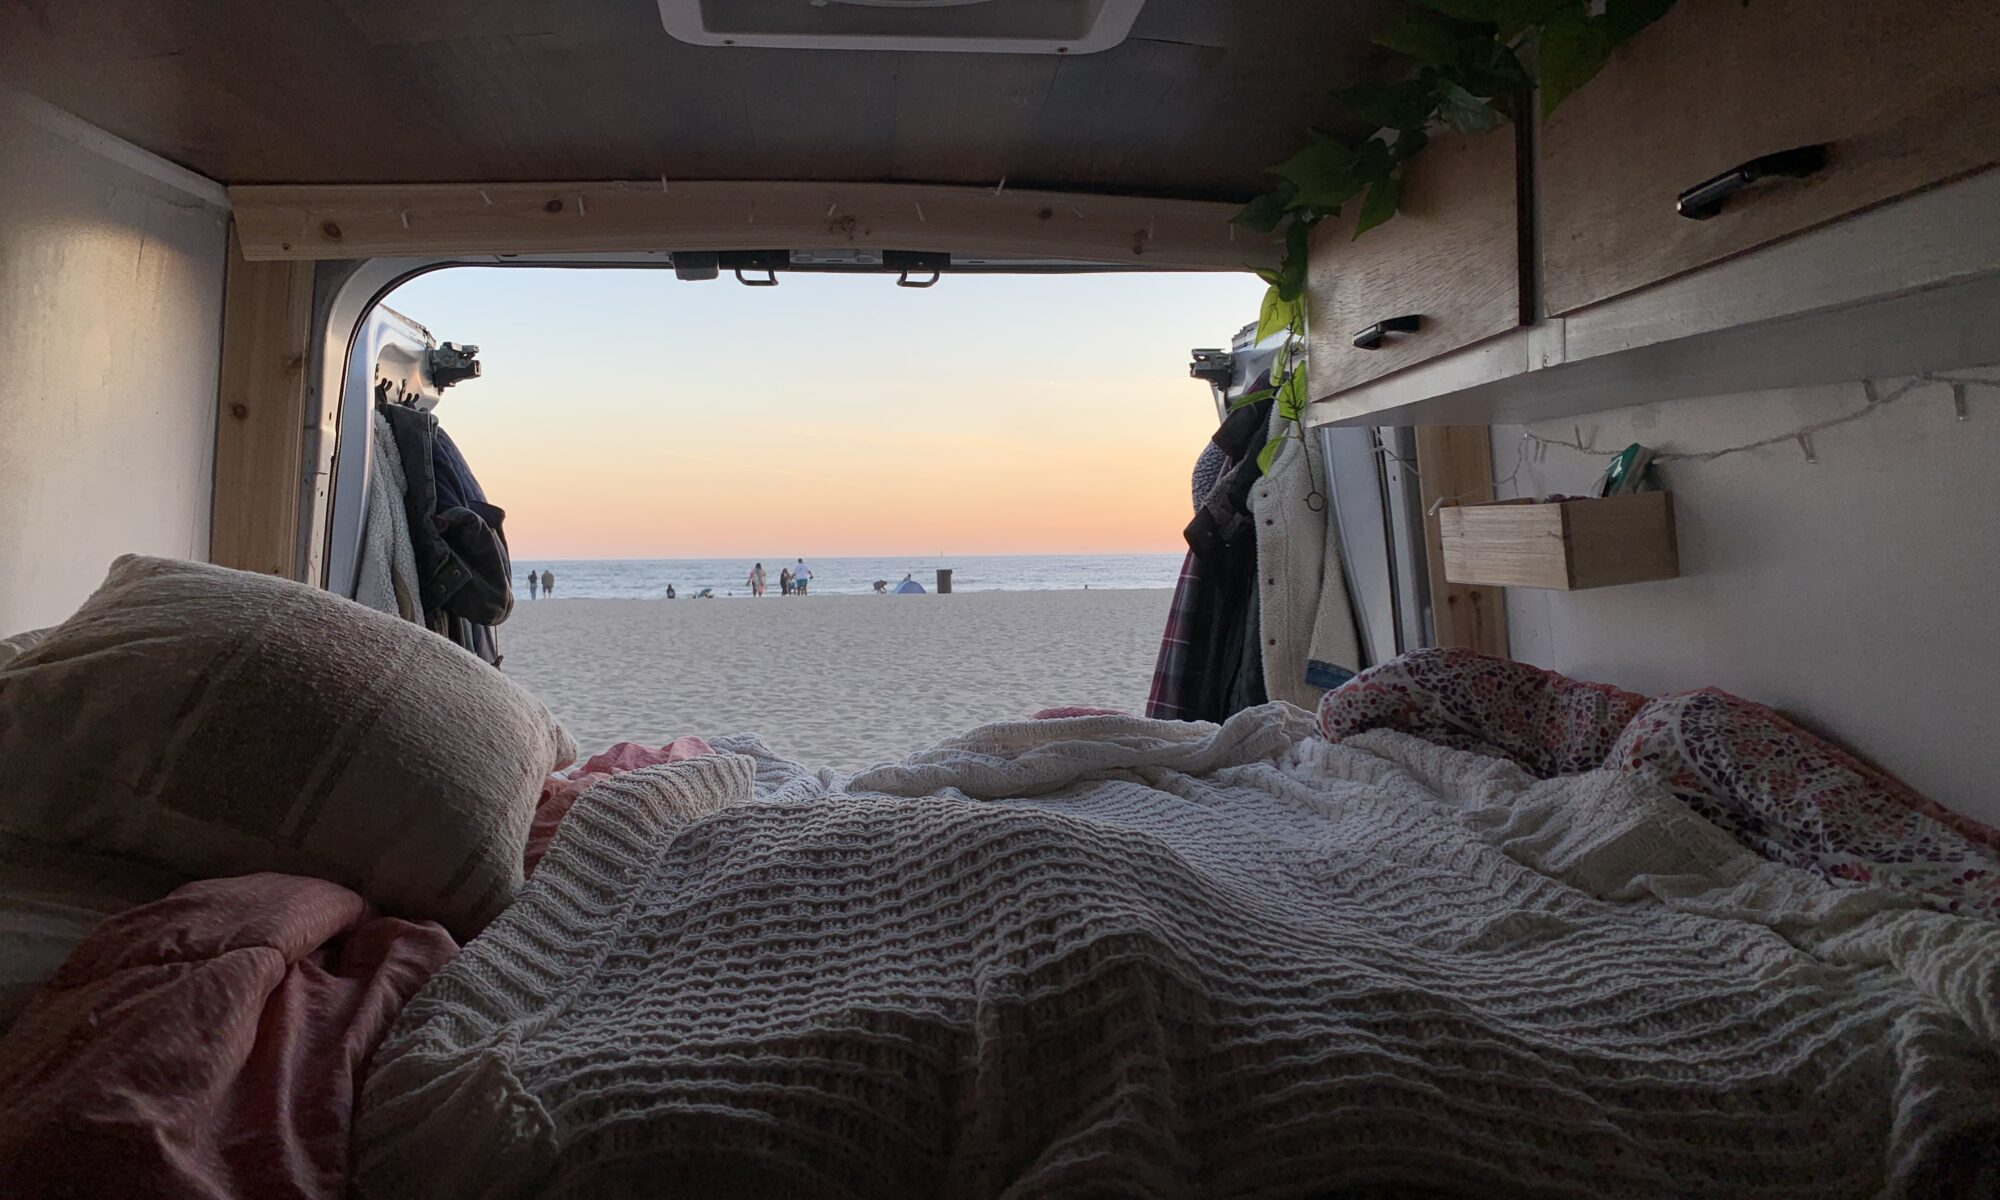 Inside a van looking onto a sandy beach and ocean at sunset